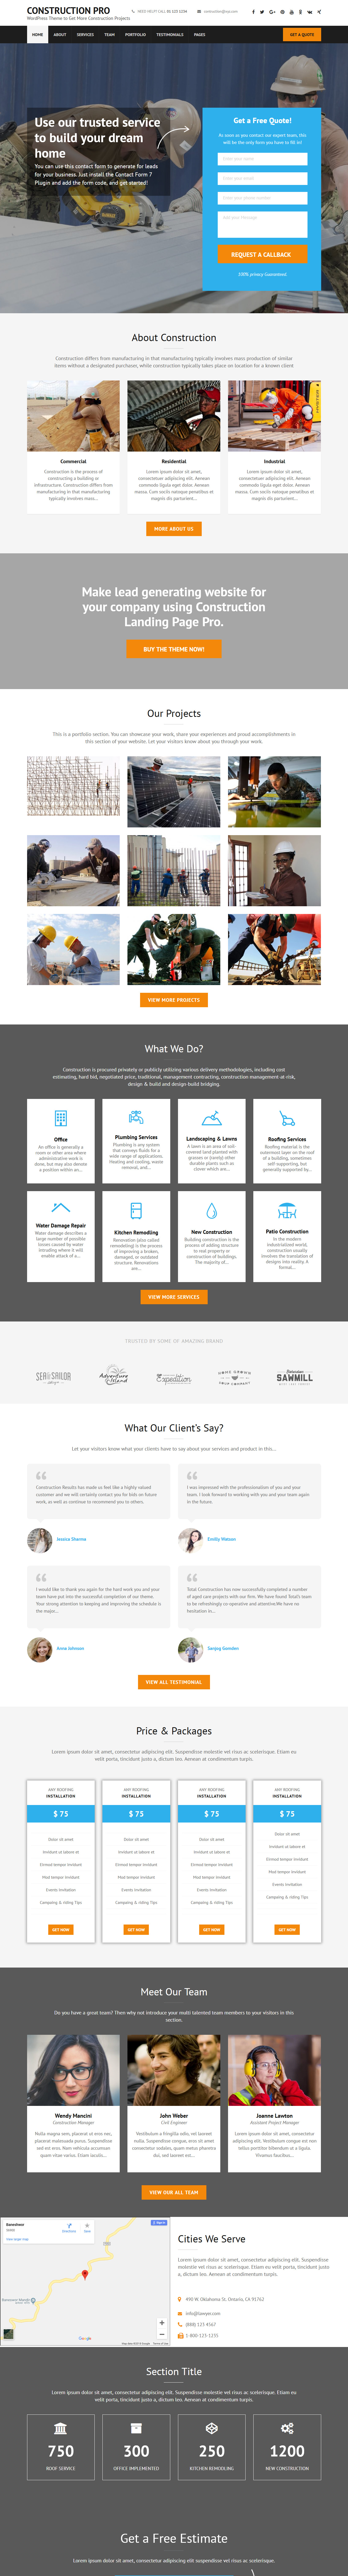 Construction Landing Page Pro - Best Premium Construction Business Company WordPress Themes and Templates